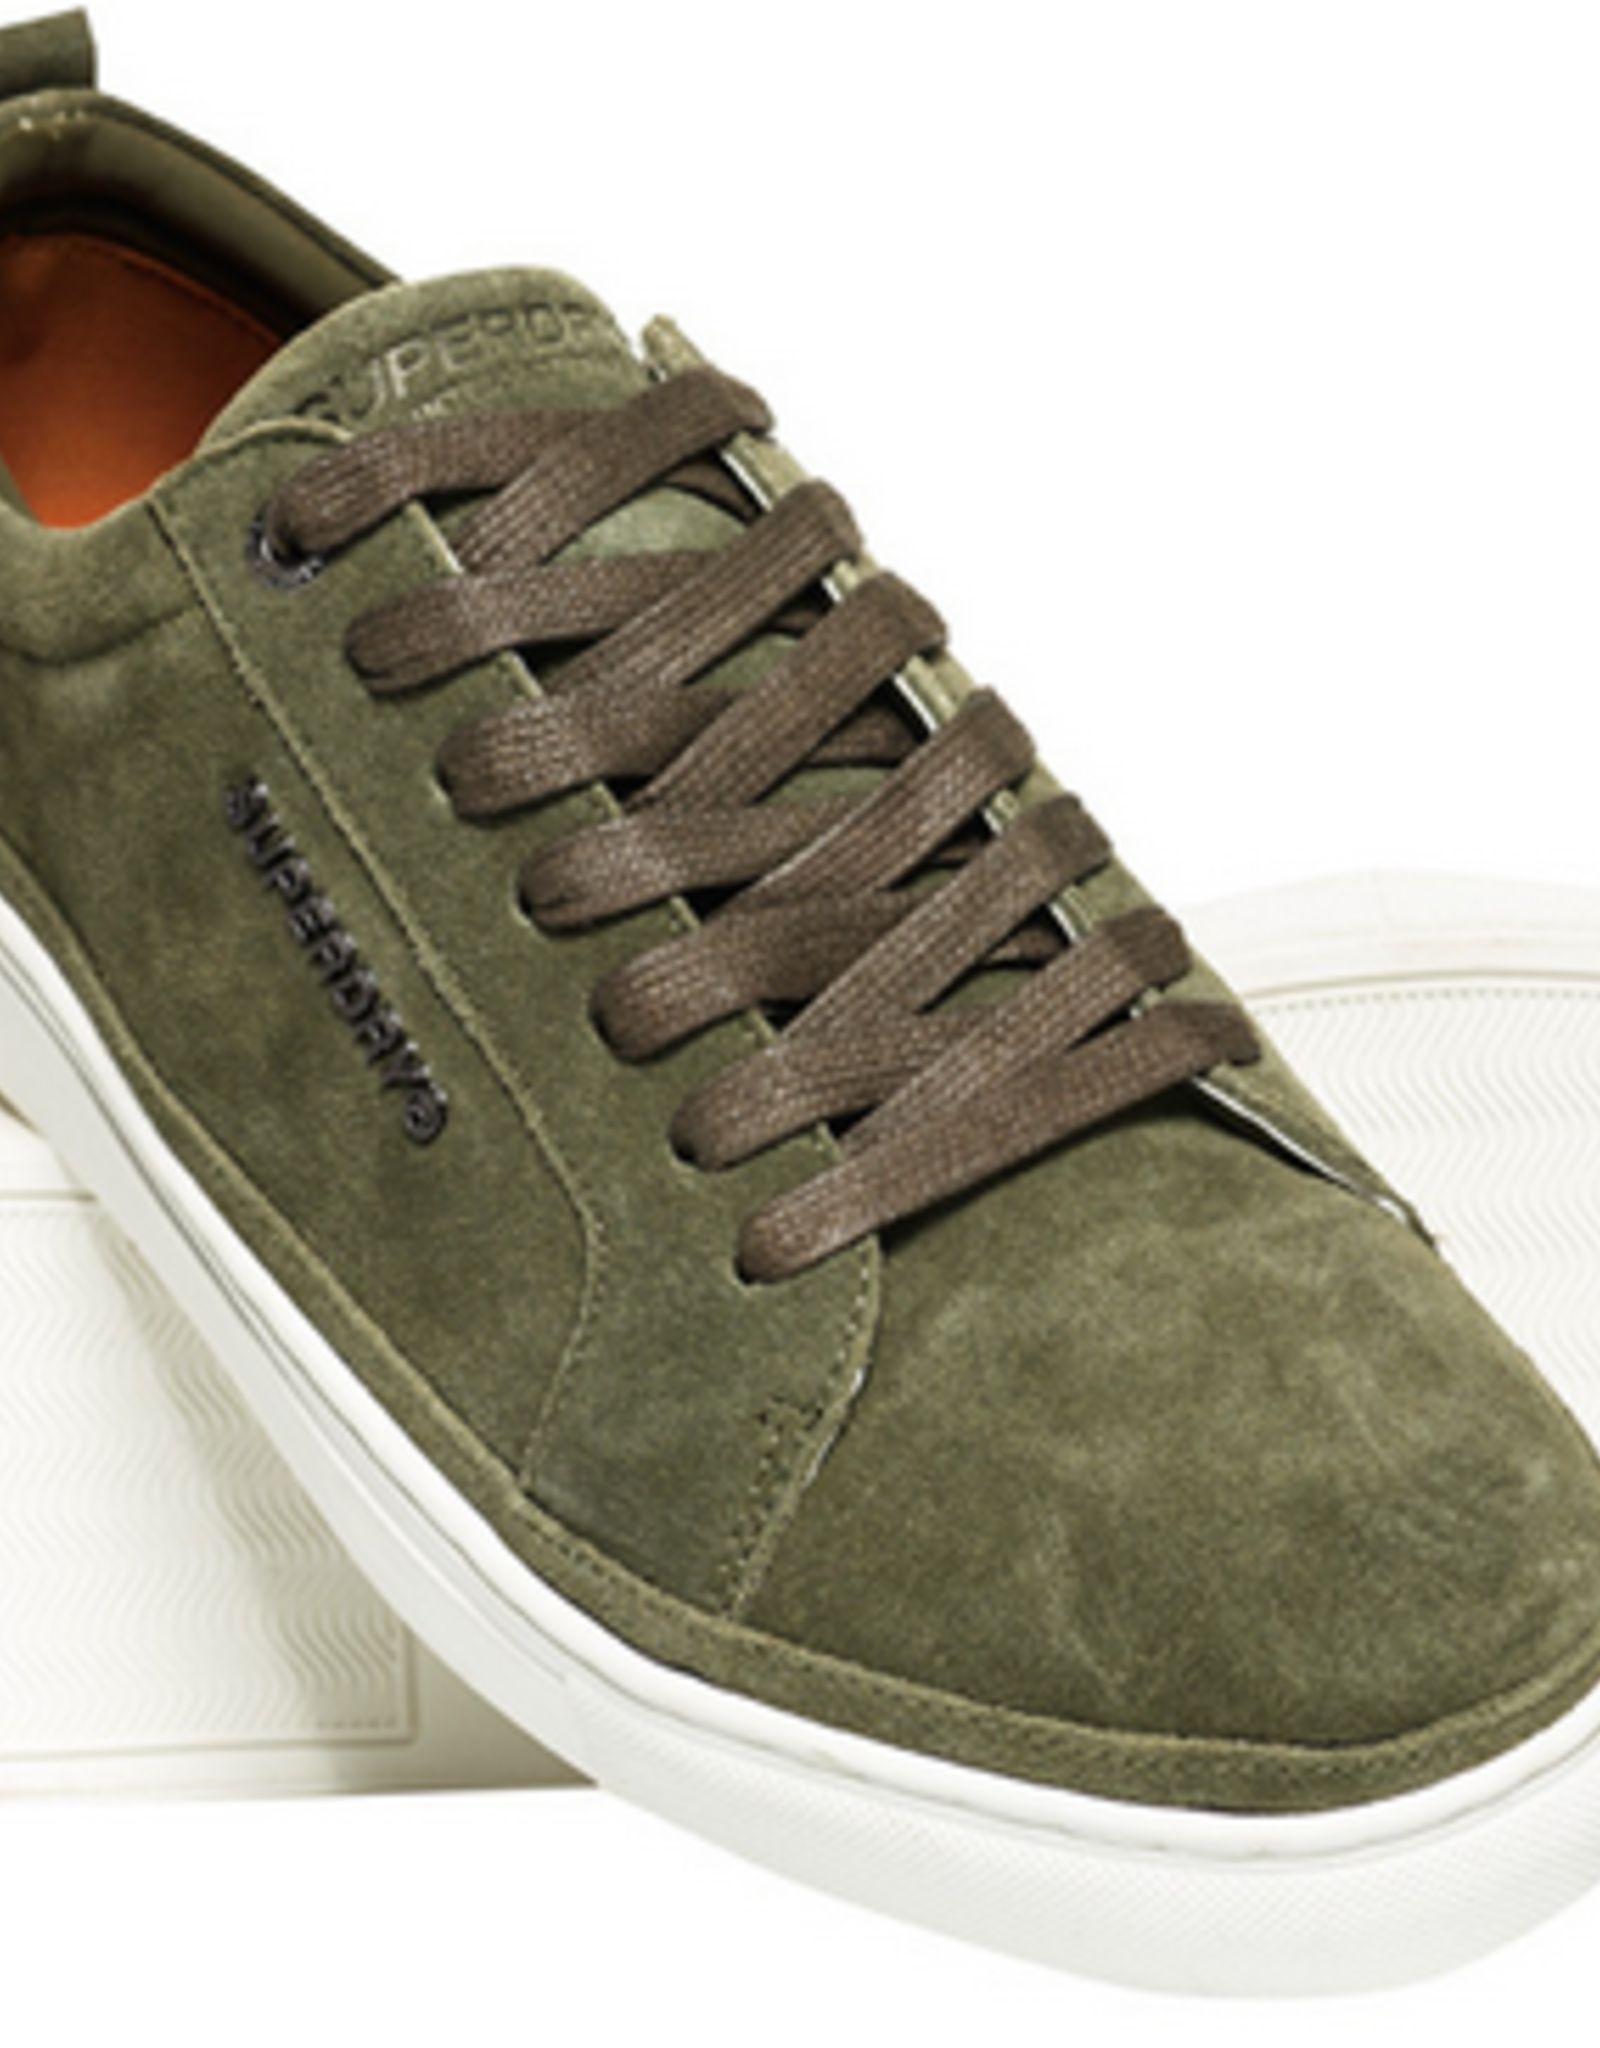 Superdry SD TRUMAN PREMIUM LACE UP KHAKI